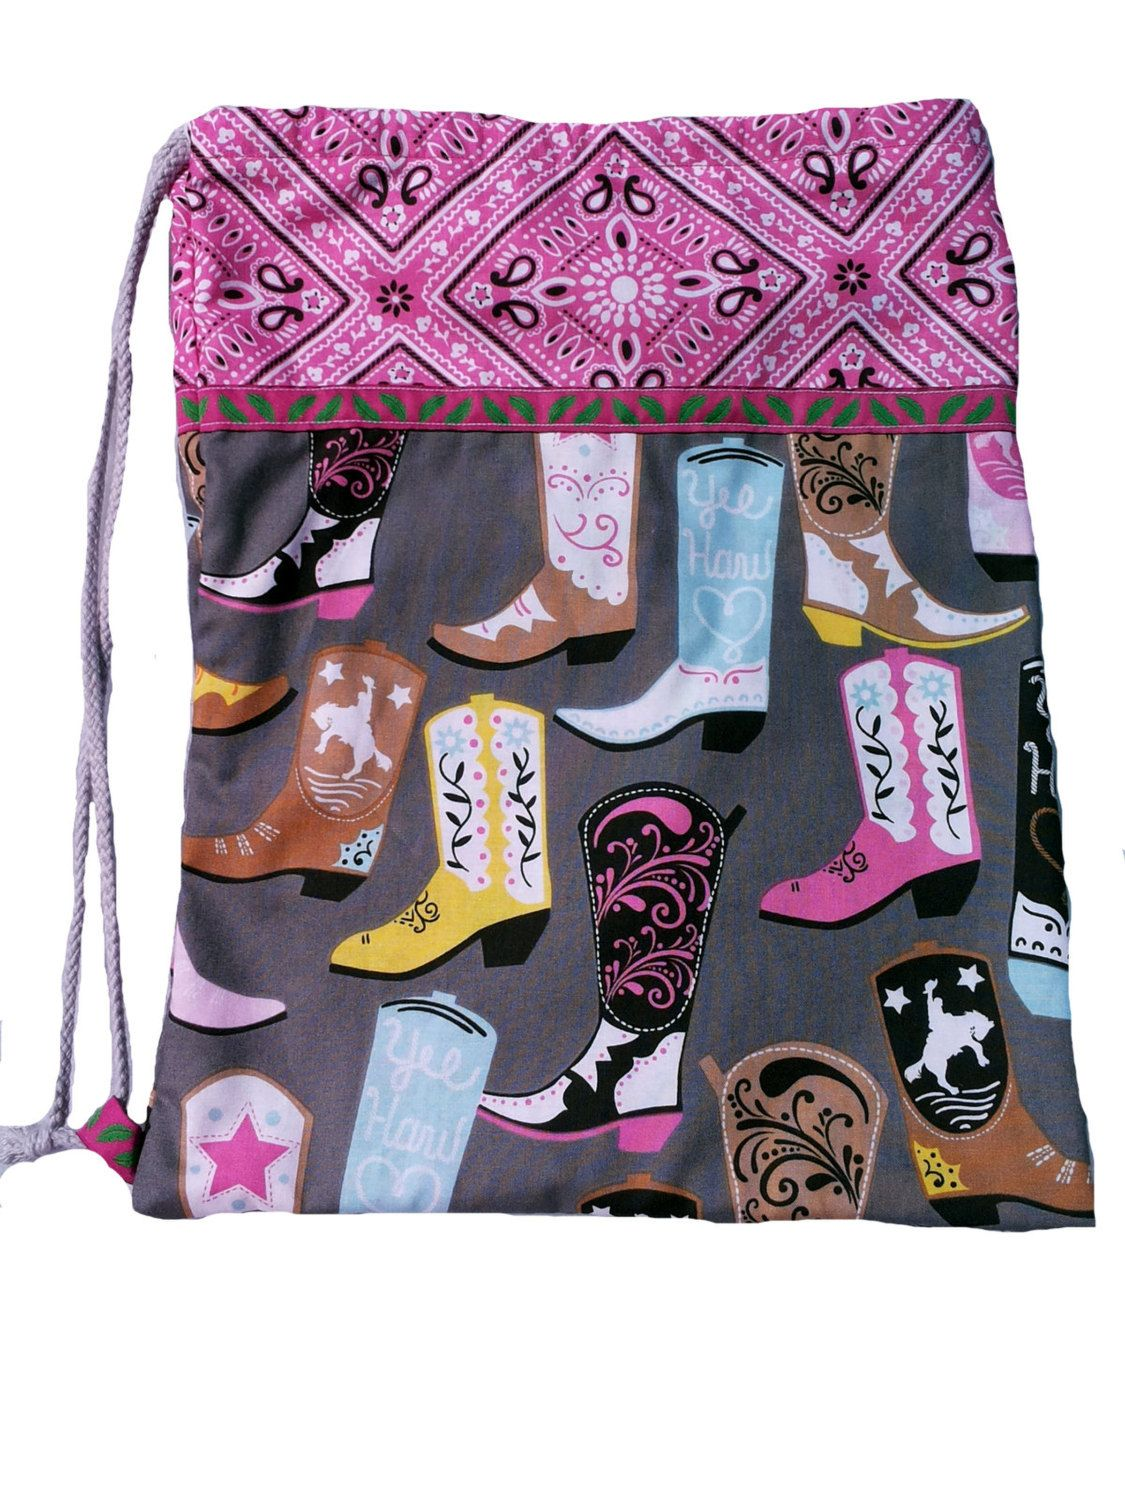 Kitbag Cowgirl, sports bags cowboy boots, pink, grey, pink, Sport ...